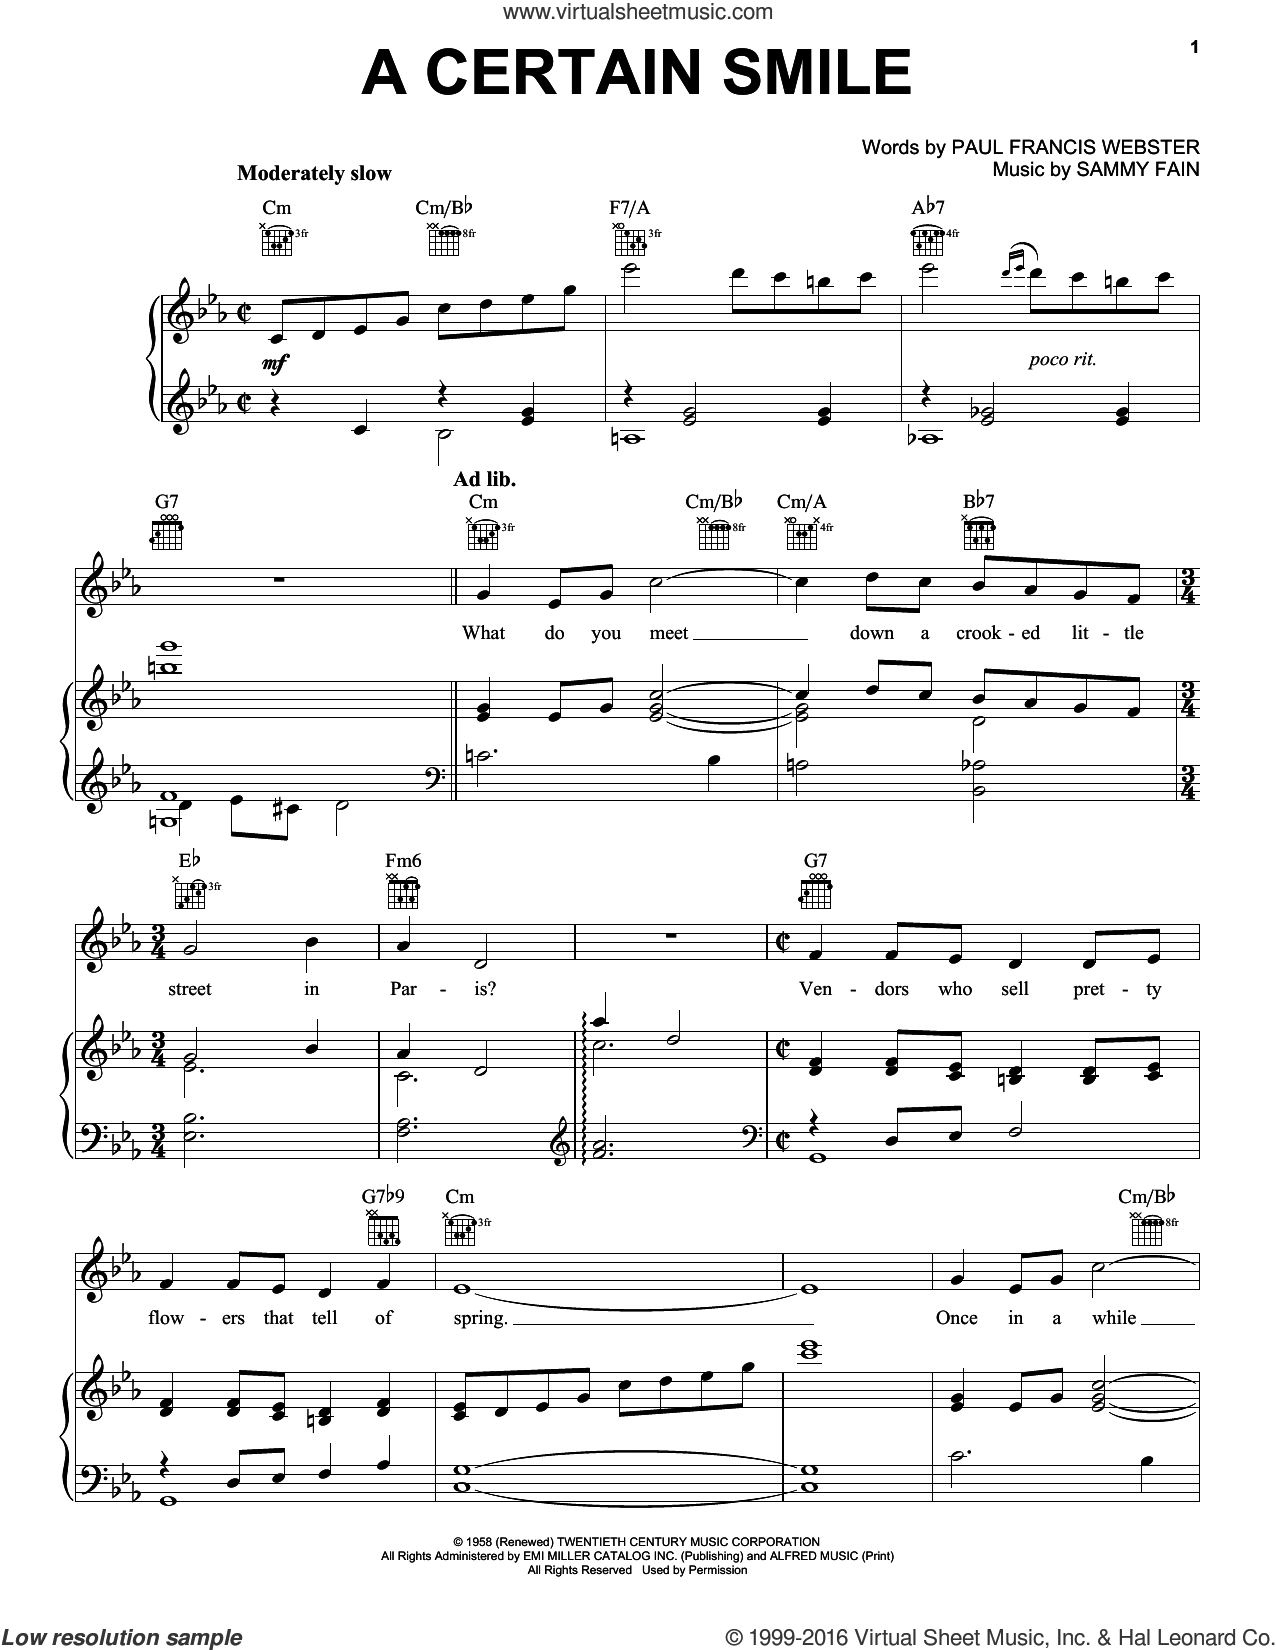 A Certain Smile sheet music for voice, piano or guitar by Johnny Mathis, Paul Francis Webster and Sammy Fain, intermediate